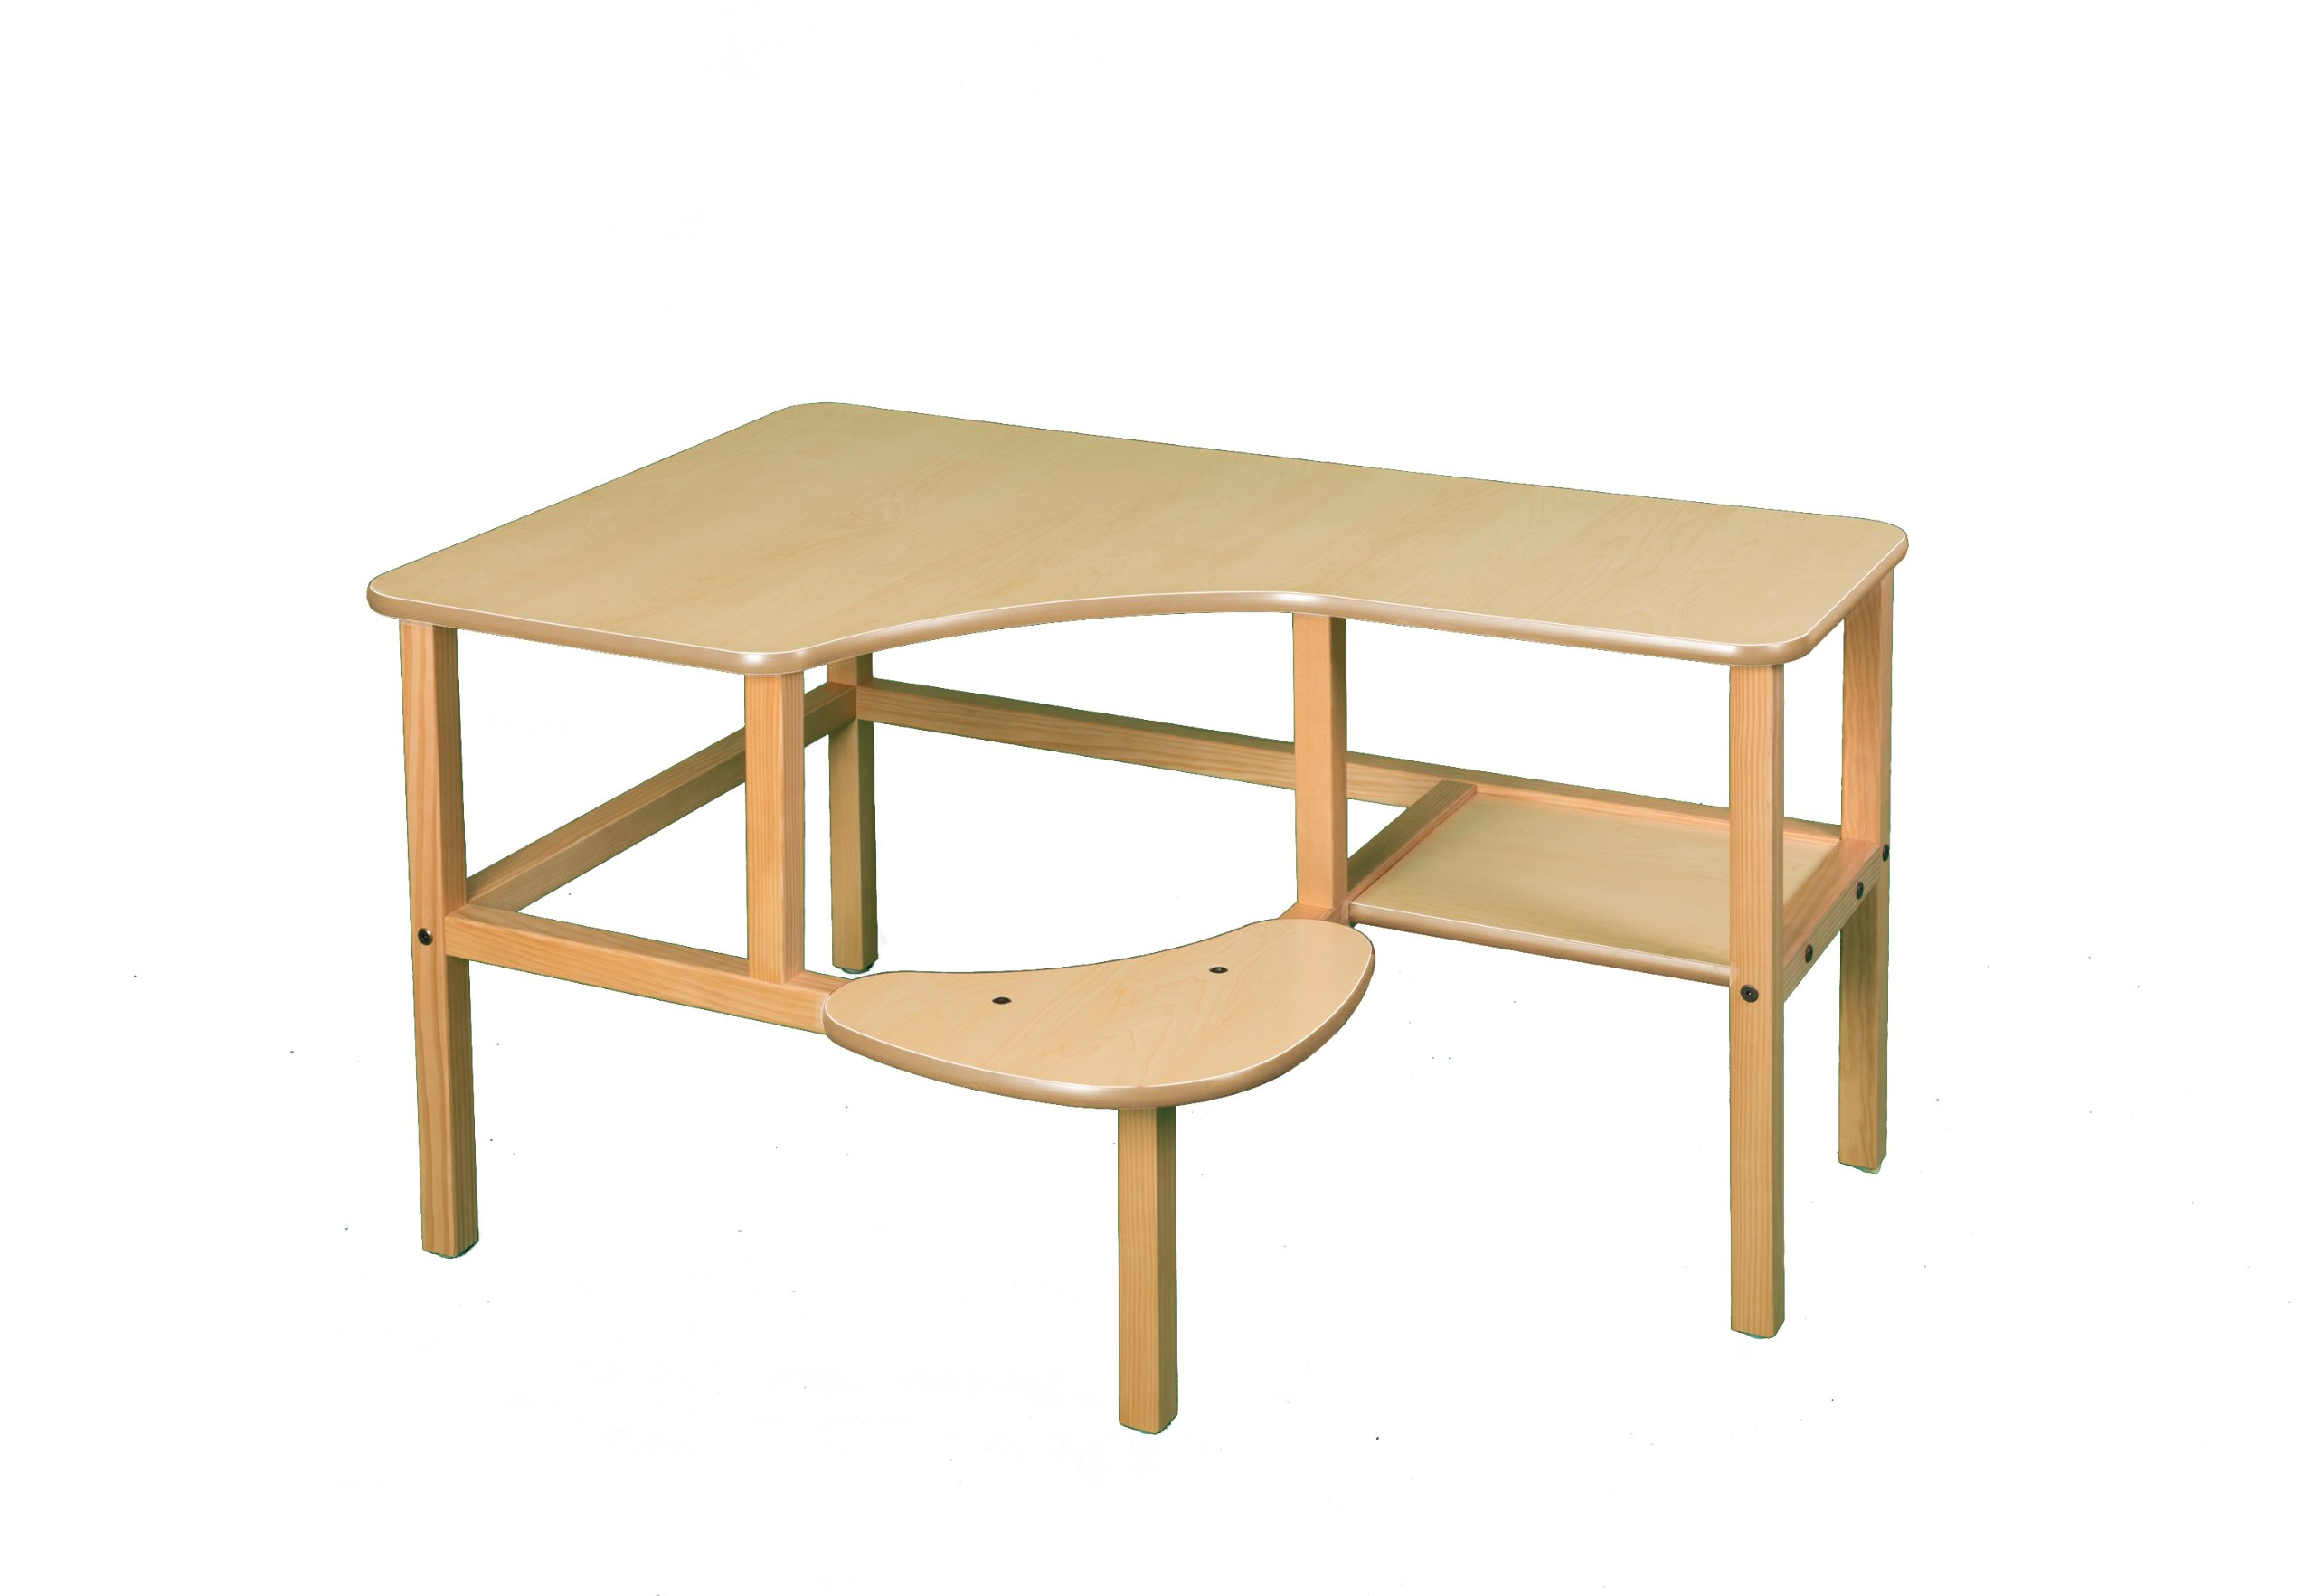 Wild Zoo Furniture Childs Wooden Computer Desk for 1, Ages 5 to 10, Maple/Tan